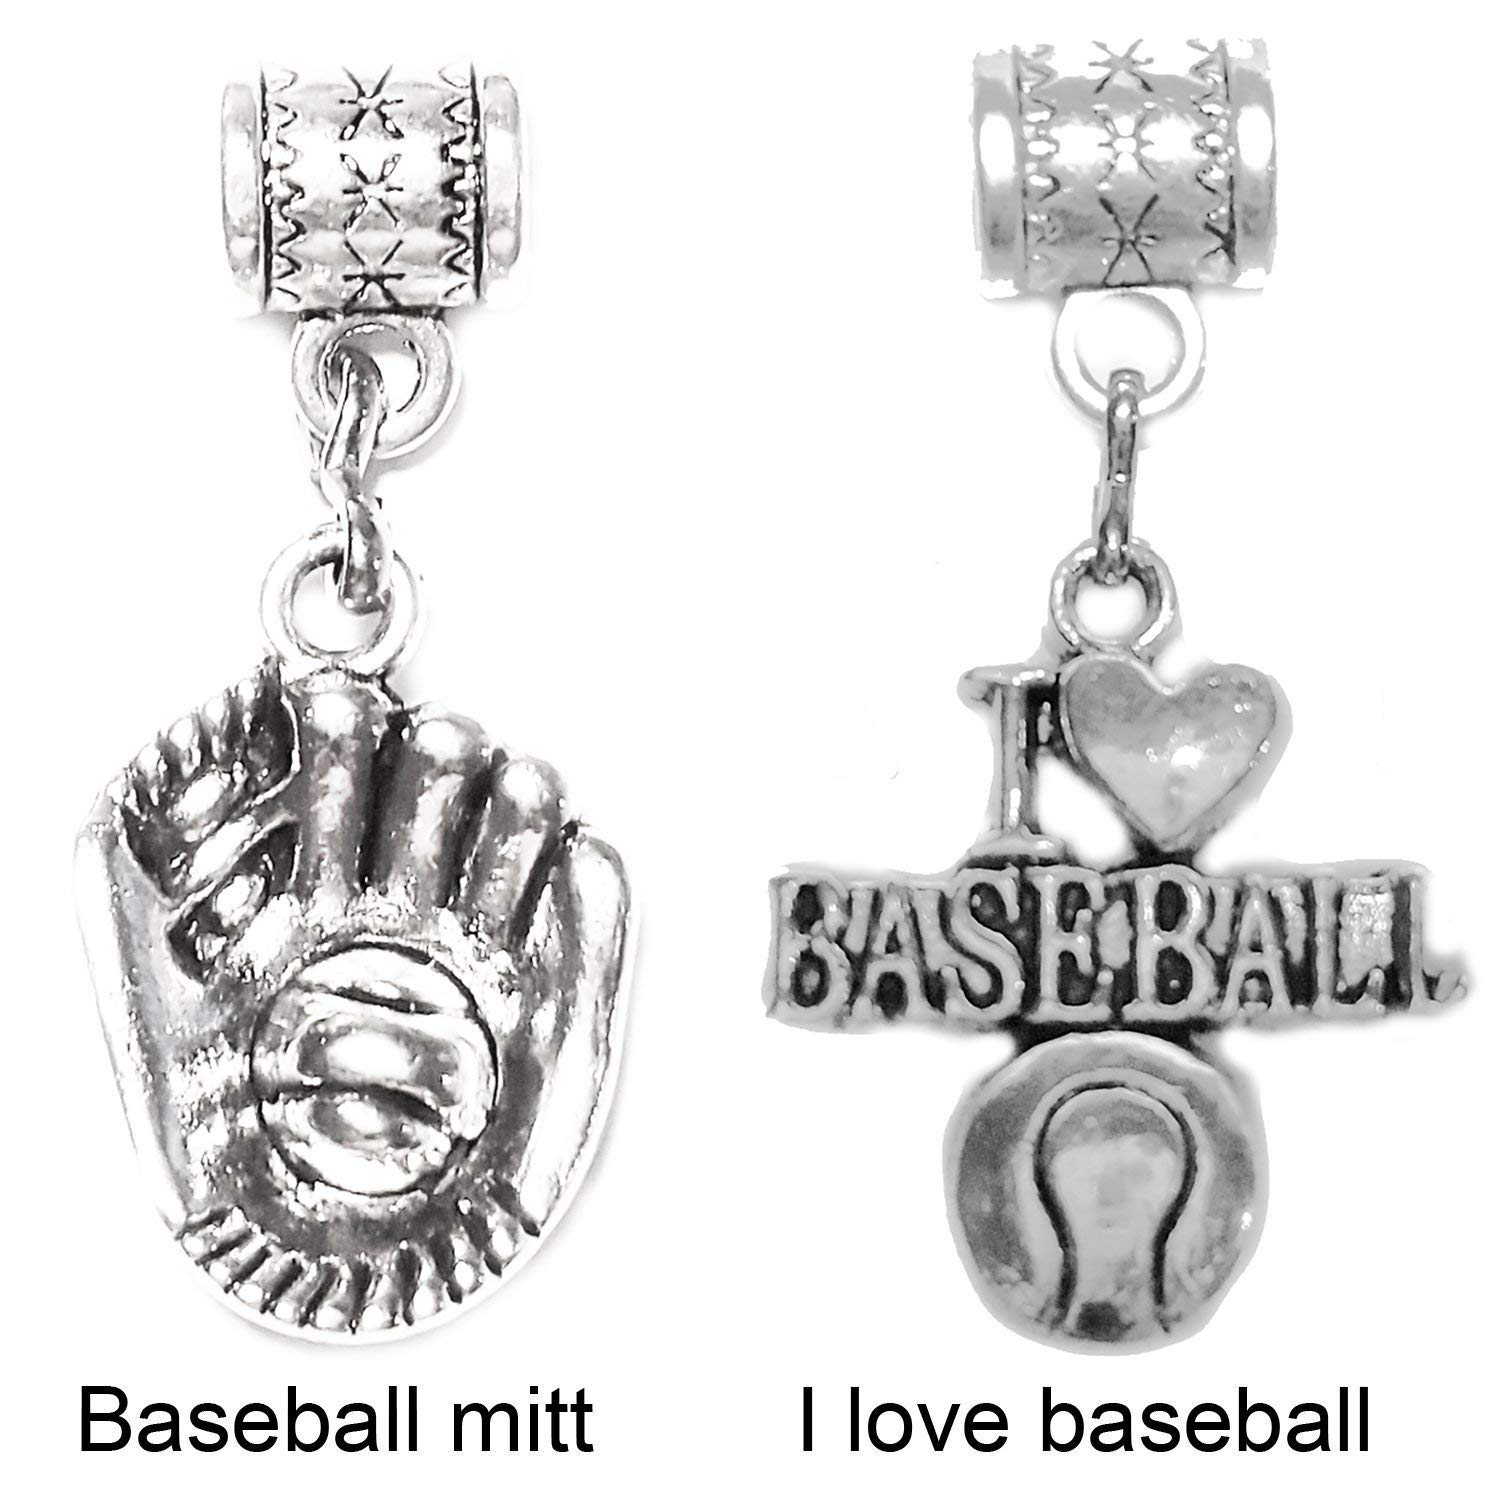 """Baseball Mitt charm"" or ""I Love Baseball charm"" silver charm by Mossy Cabin for modern large hole snake chain charm bracelets, or add to a neck chain, pendant necklace or key chain. Your choice"